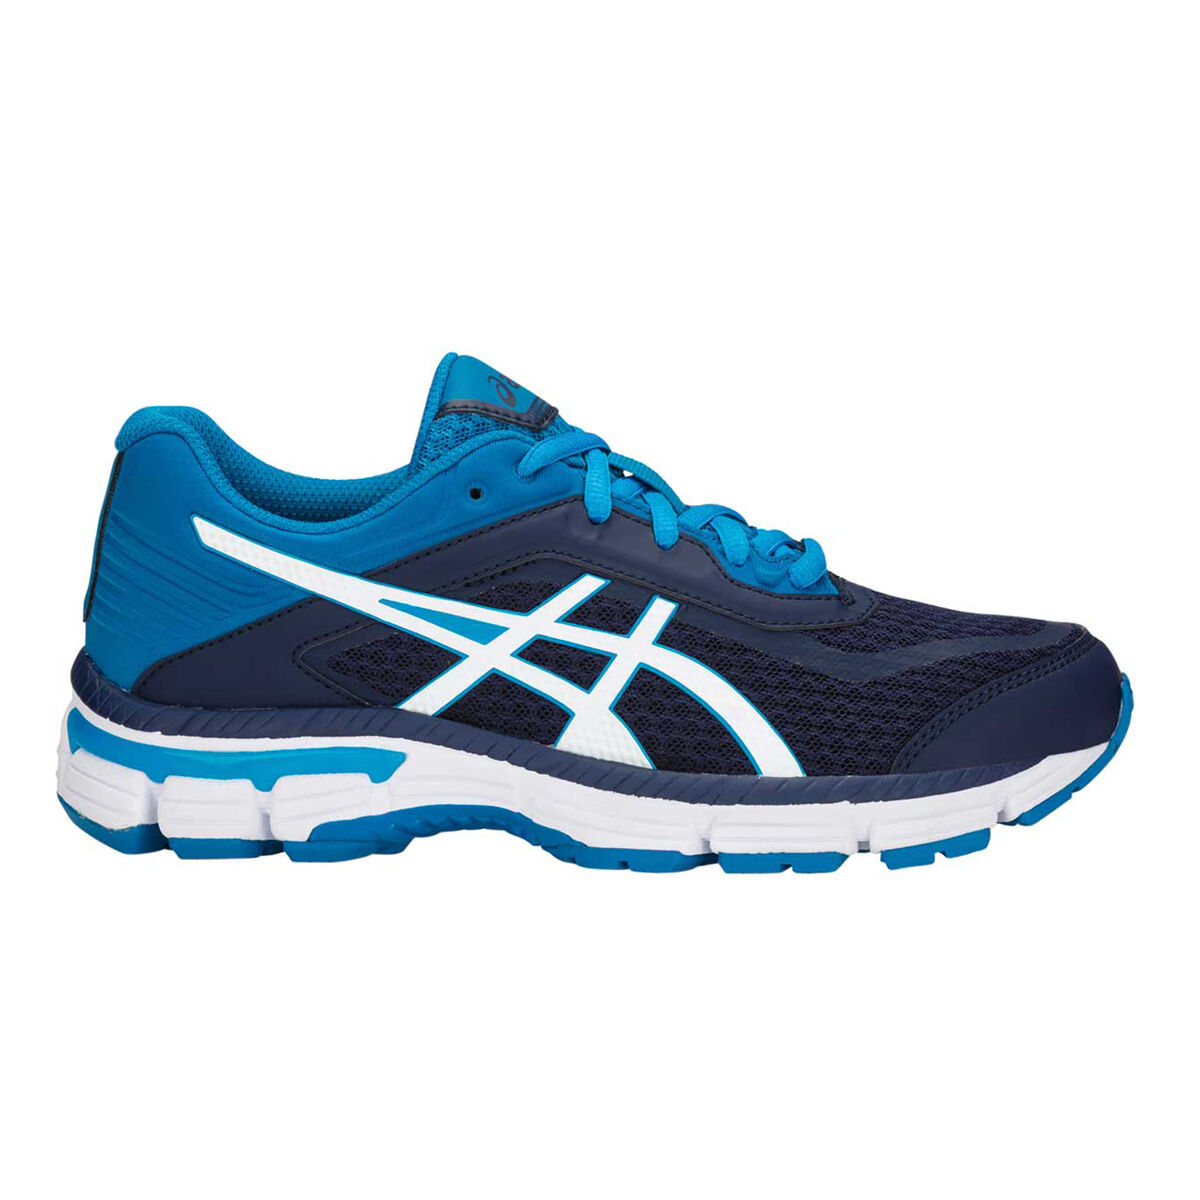 Asics GT 2000 6 Kids Running Shoes